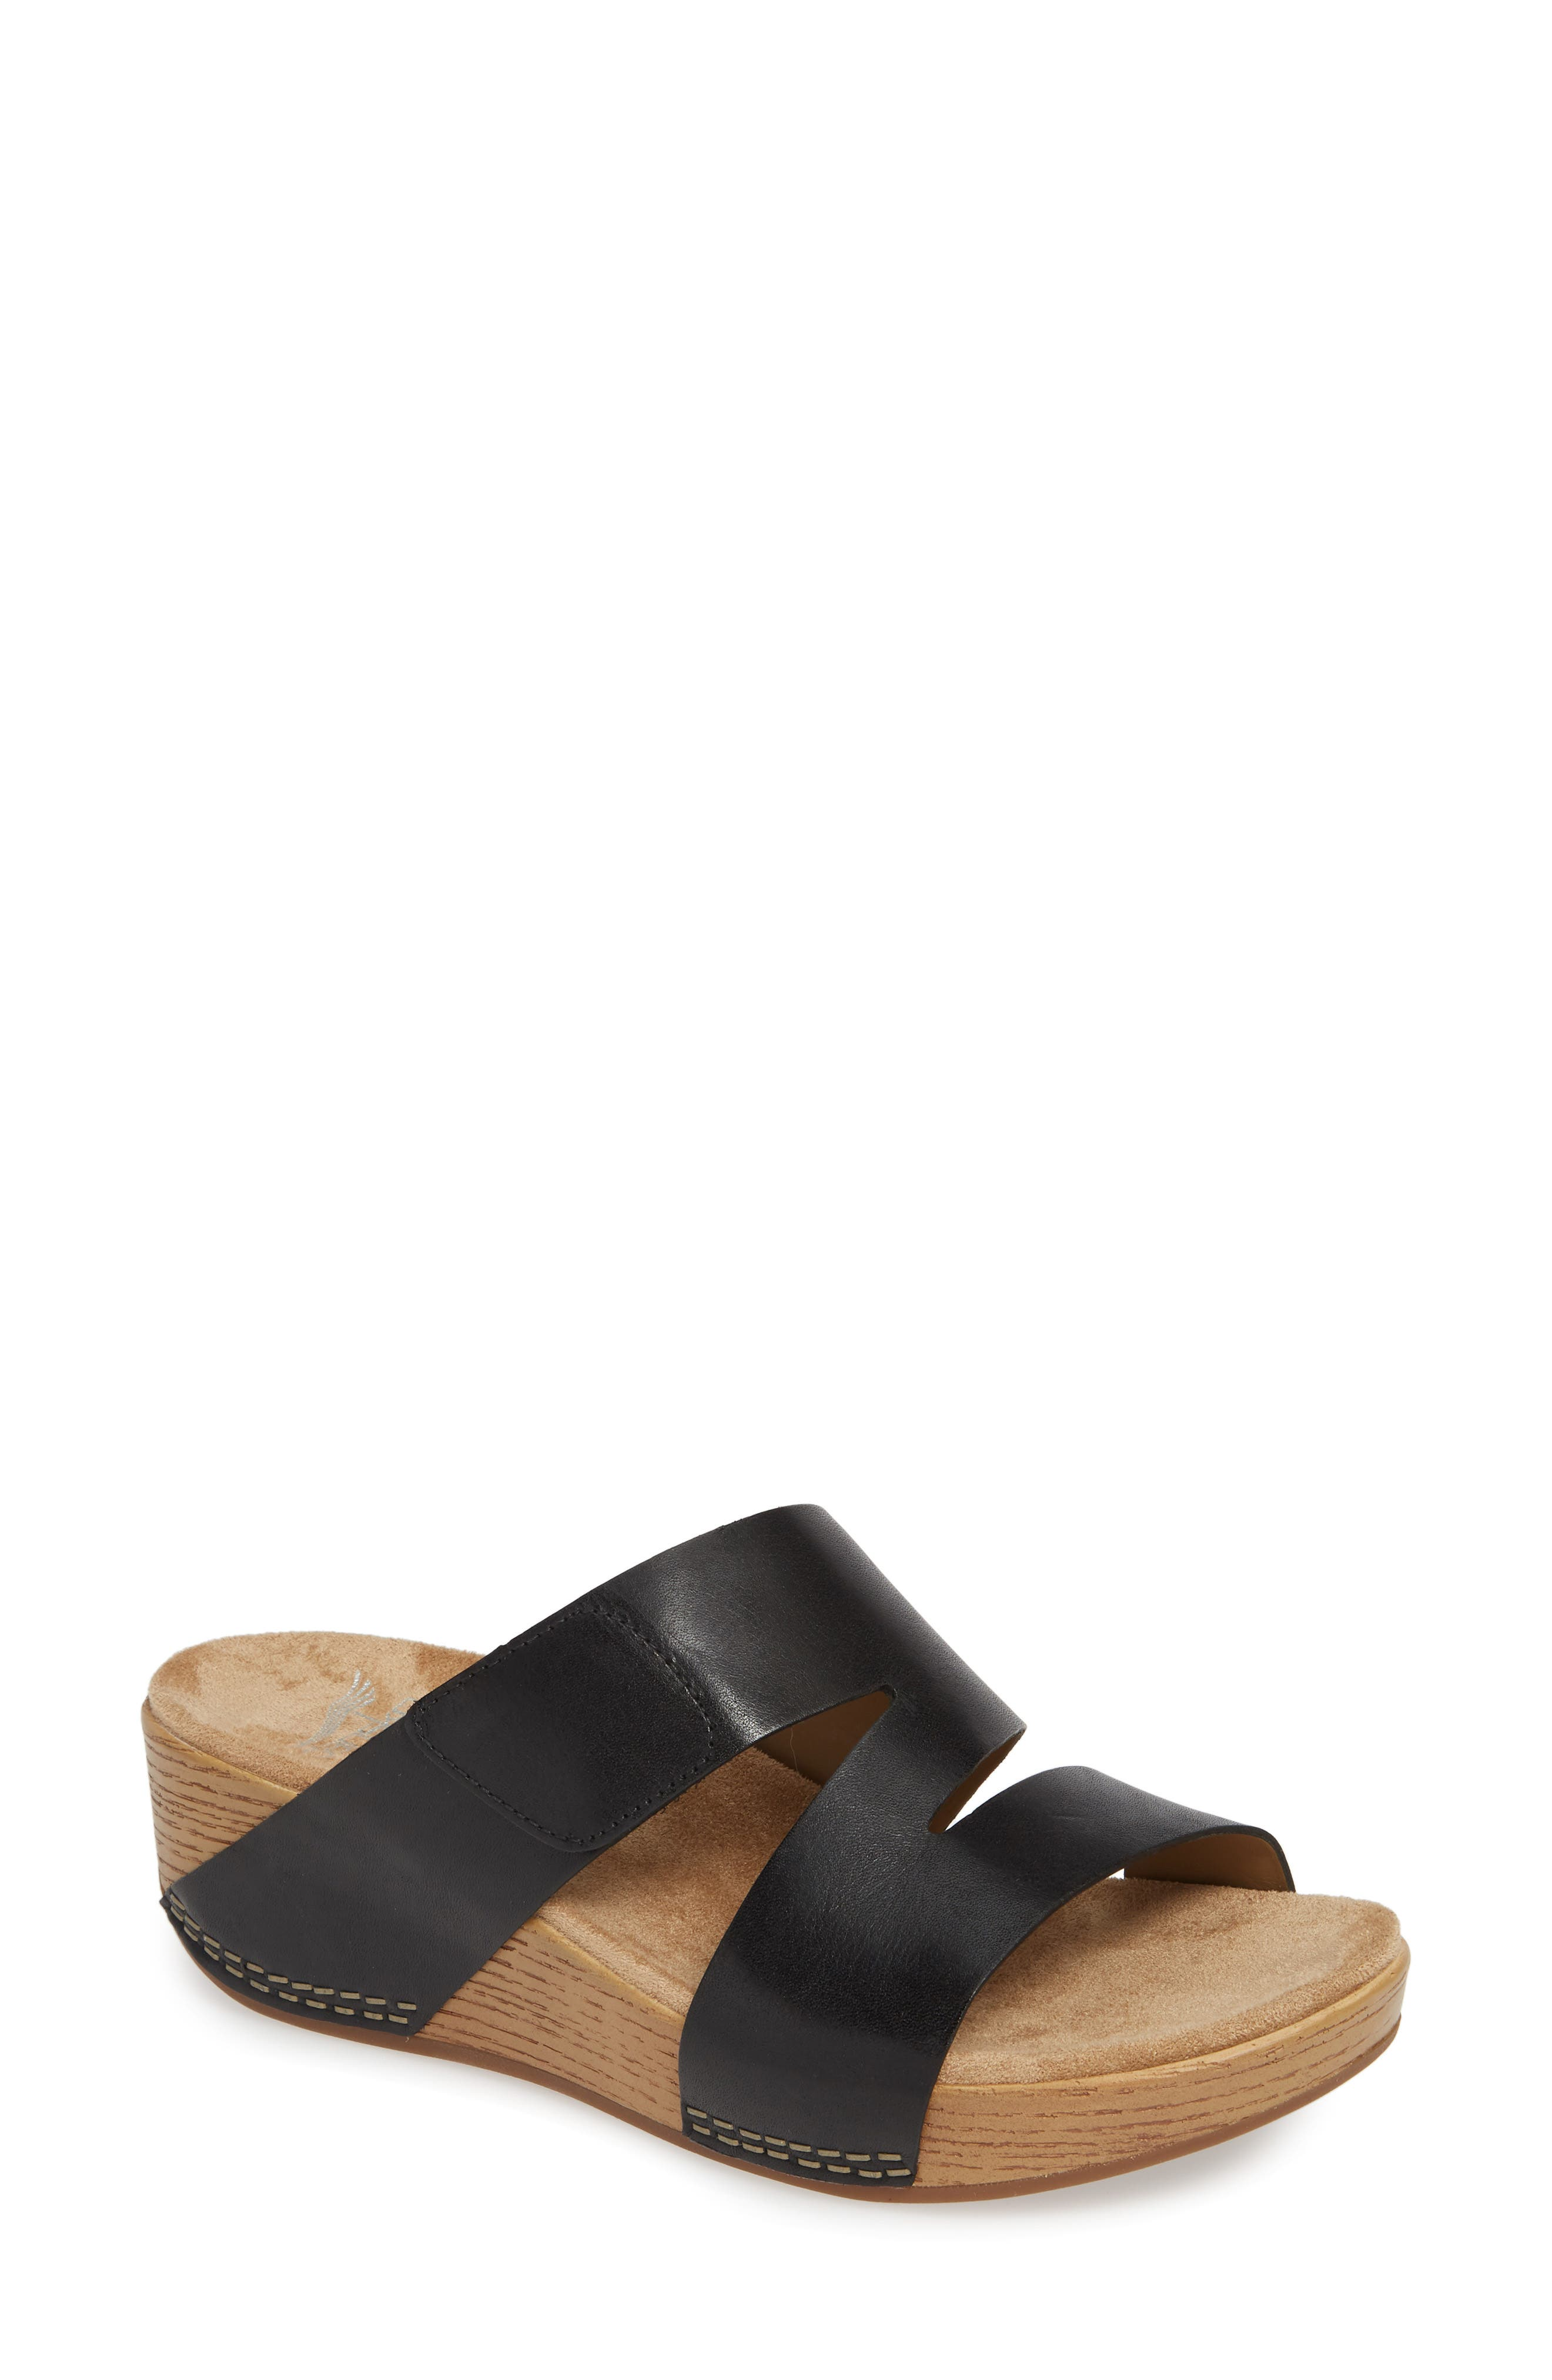 Lacee Slide Sandal, Main, color, BLACK LEATHER